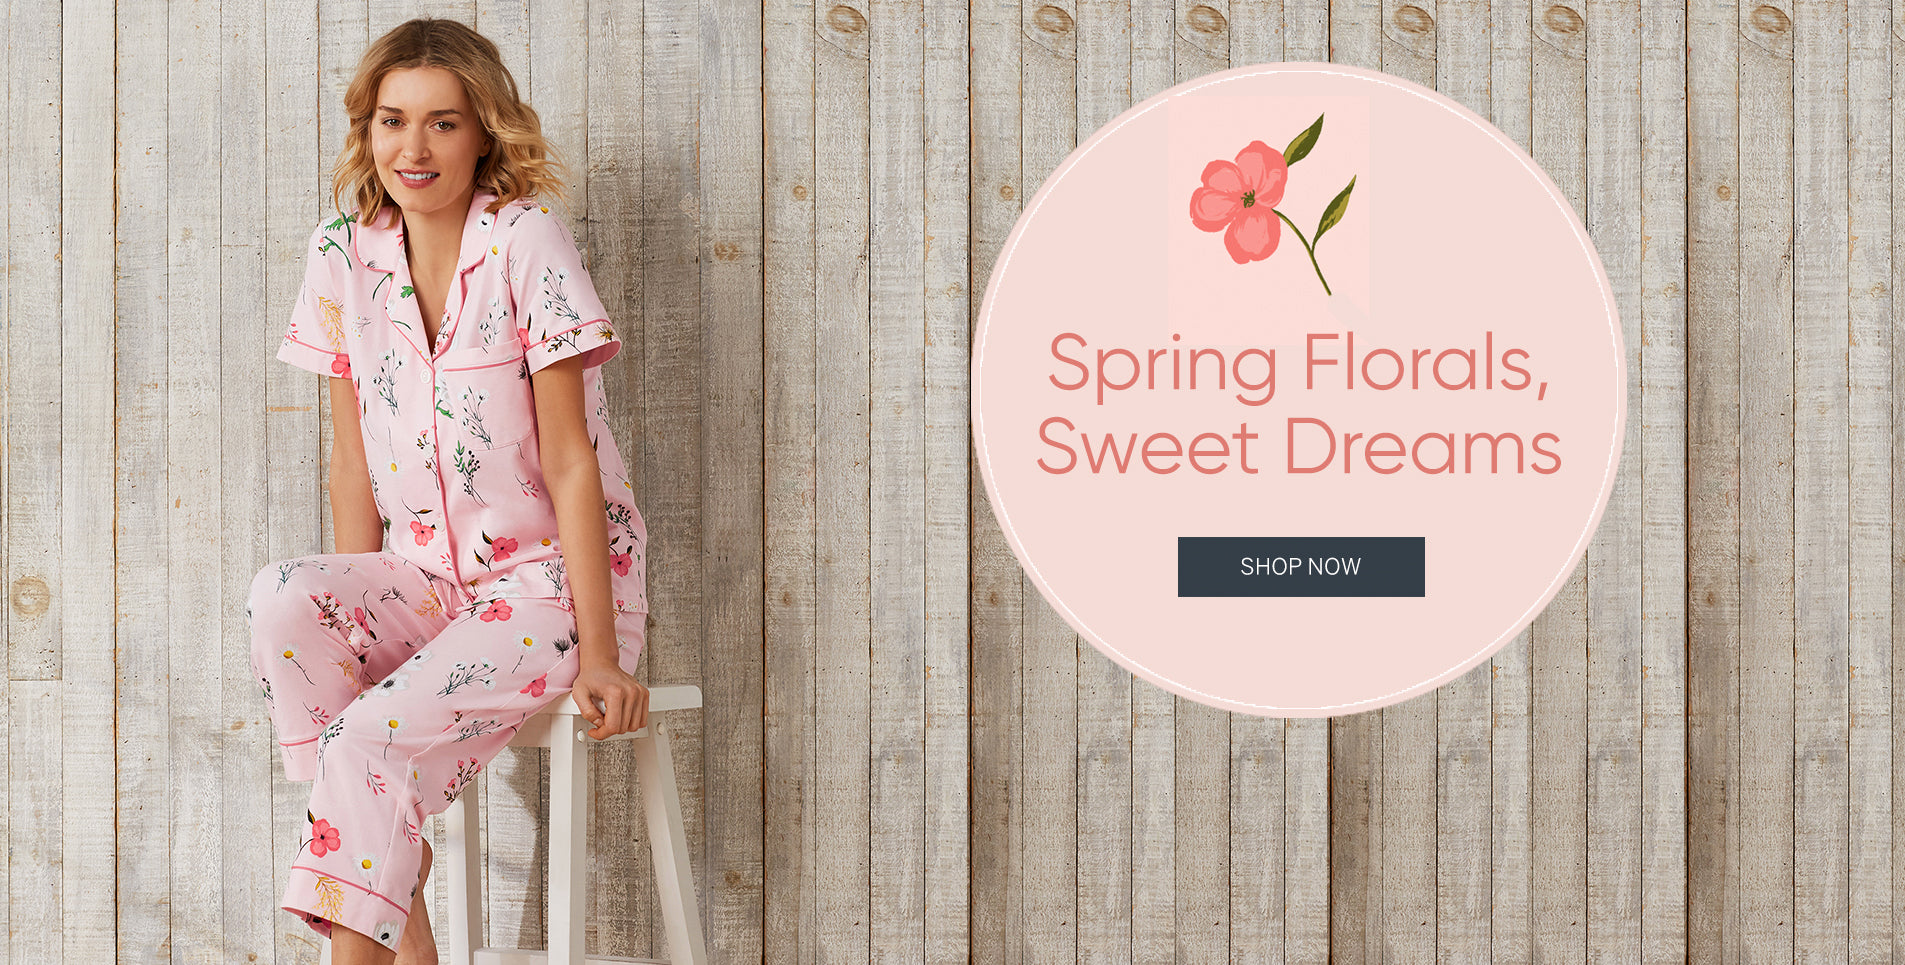 Spring Florals, Sweet Dreams items homepage